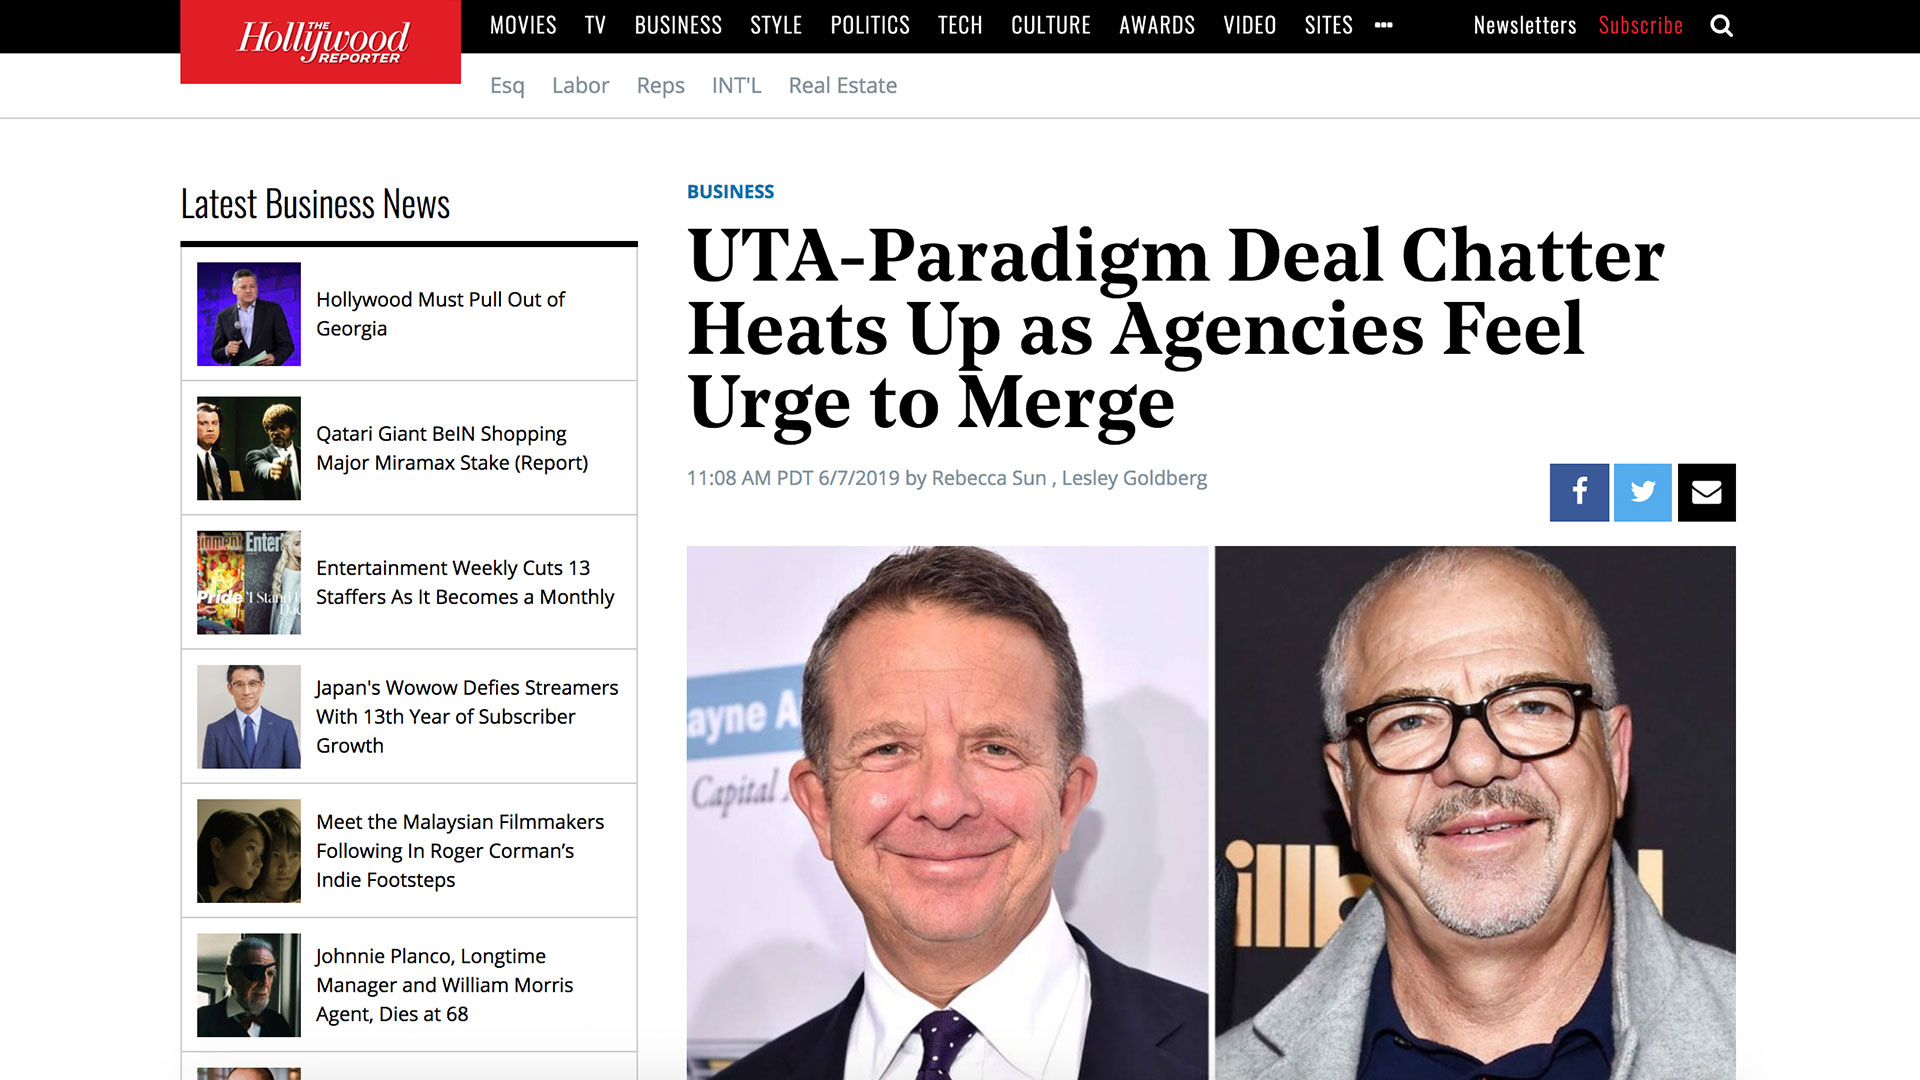 Fairness Rocks News UTA-Paradigm Deal Chatter Heats Up as Agencies Feel Urge to Merge